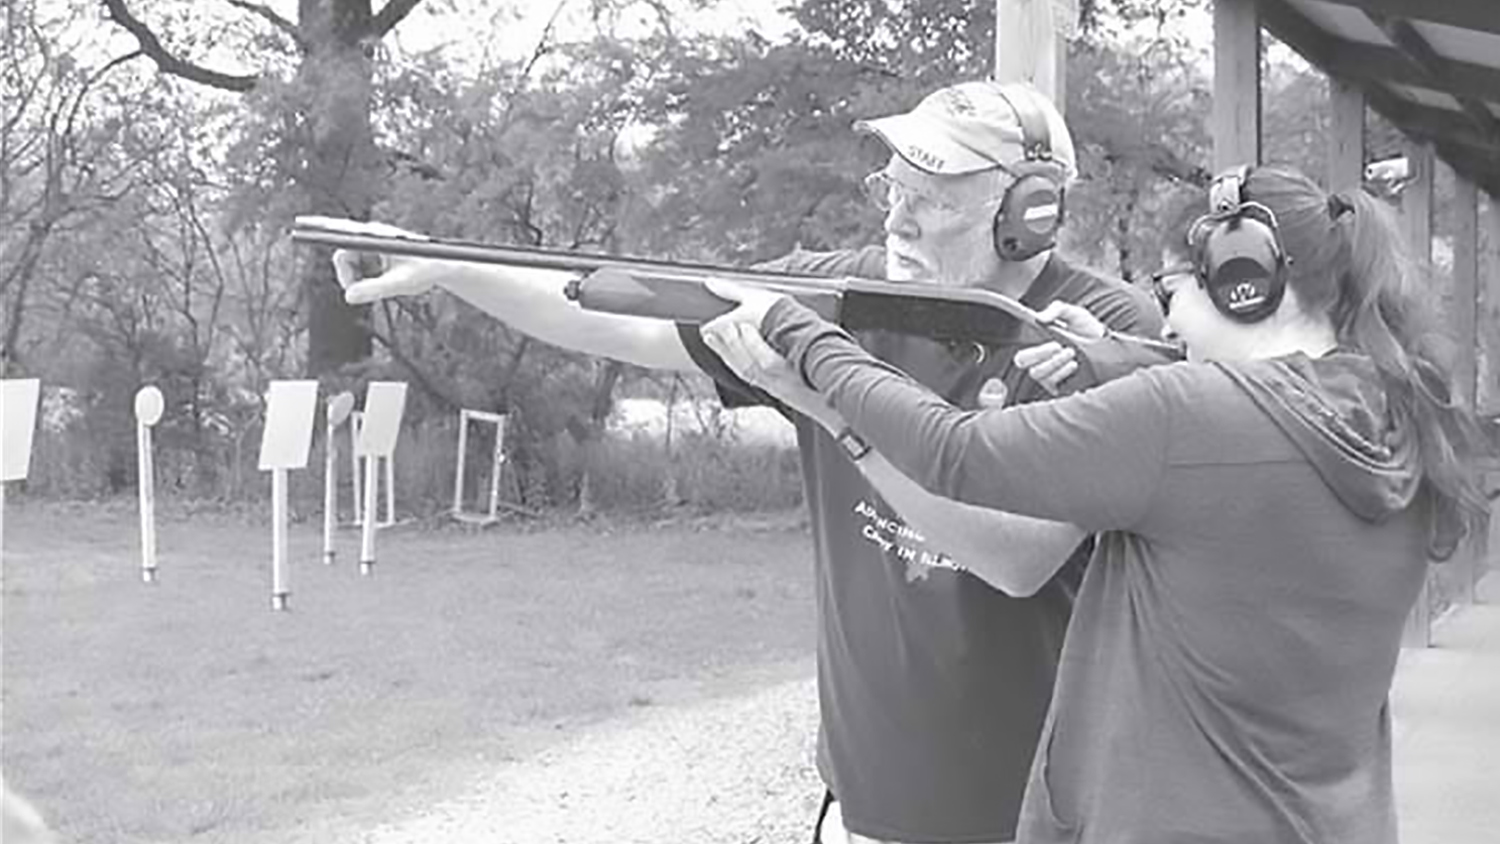 The Carmi Times: Carmi Rifle Club to Sponsor Annual NRA Day